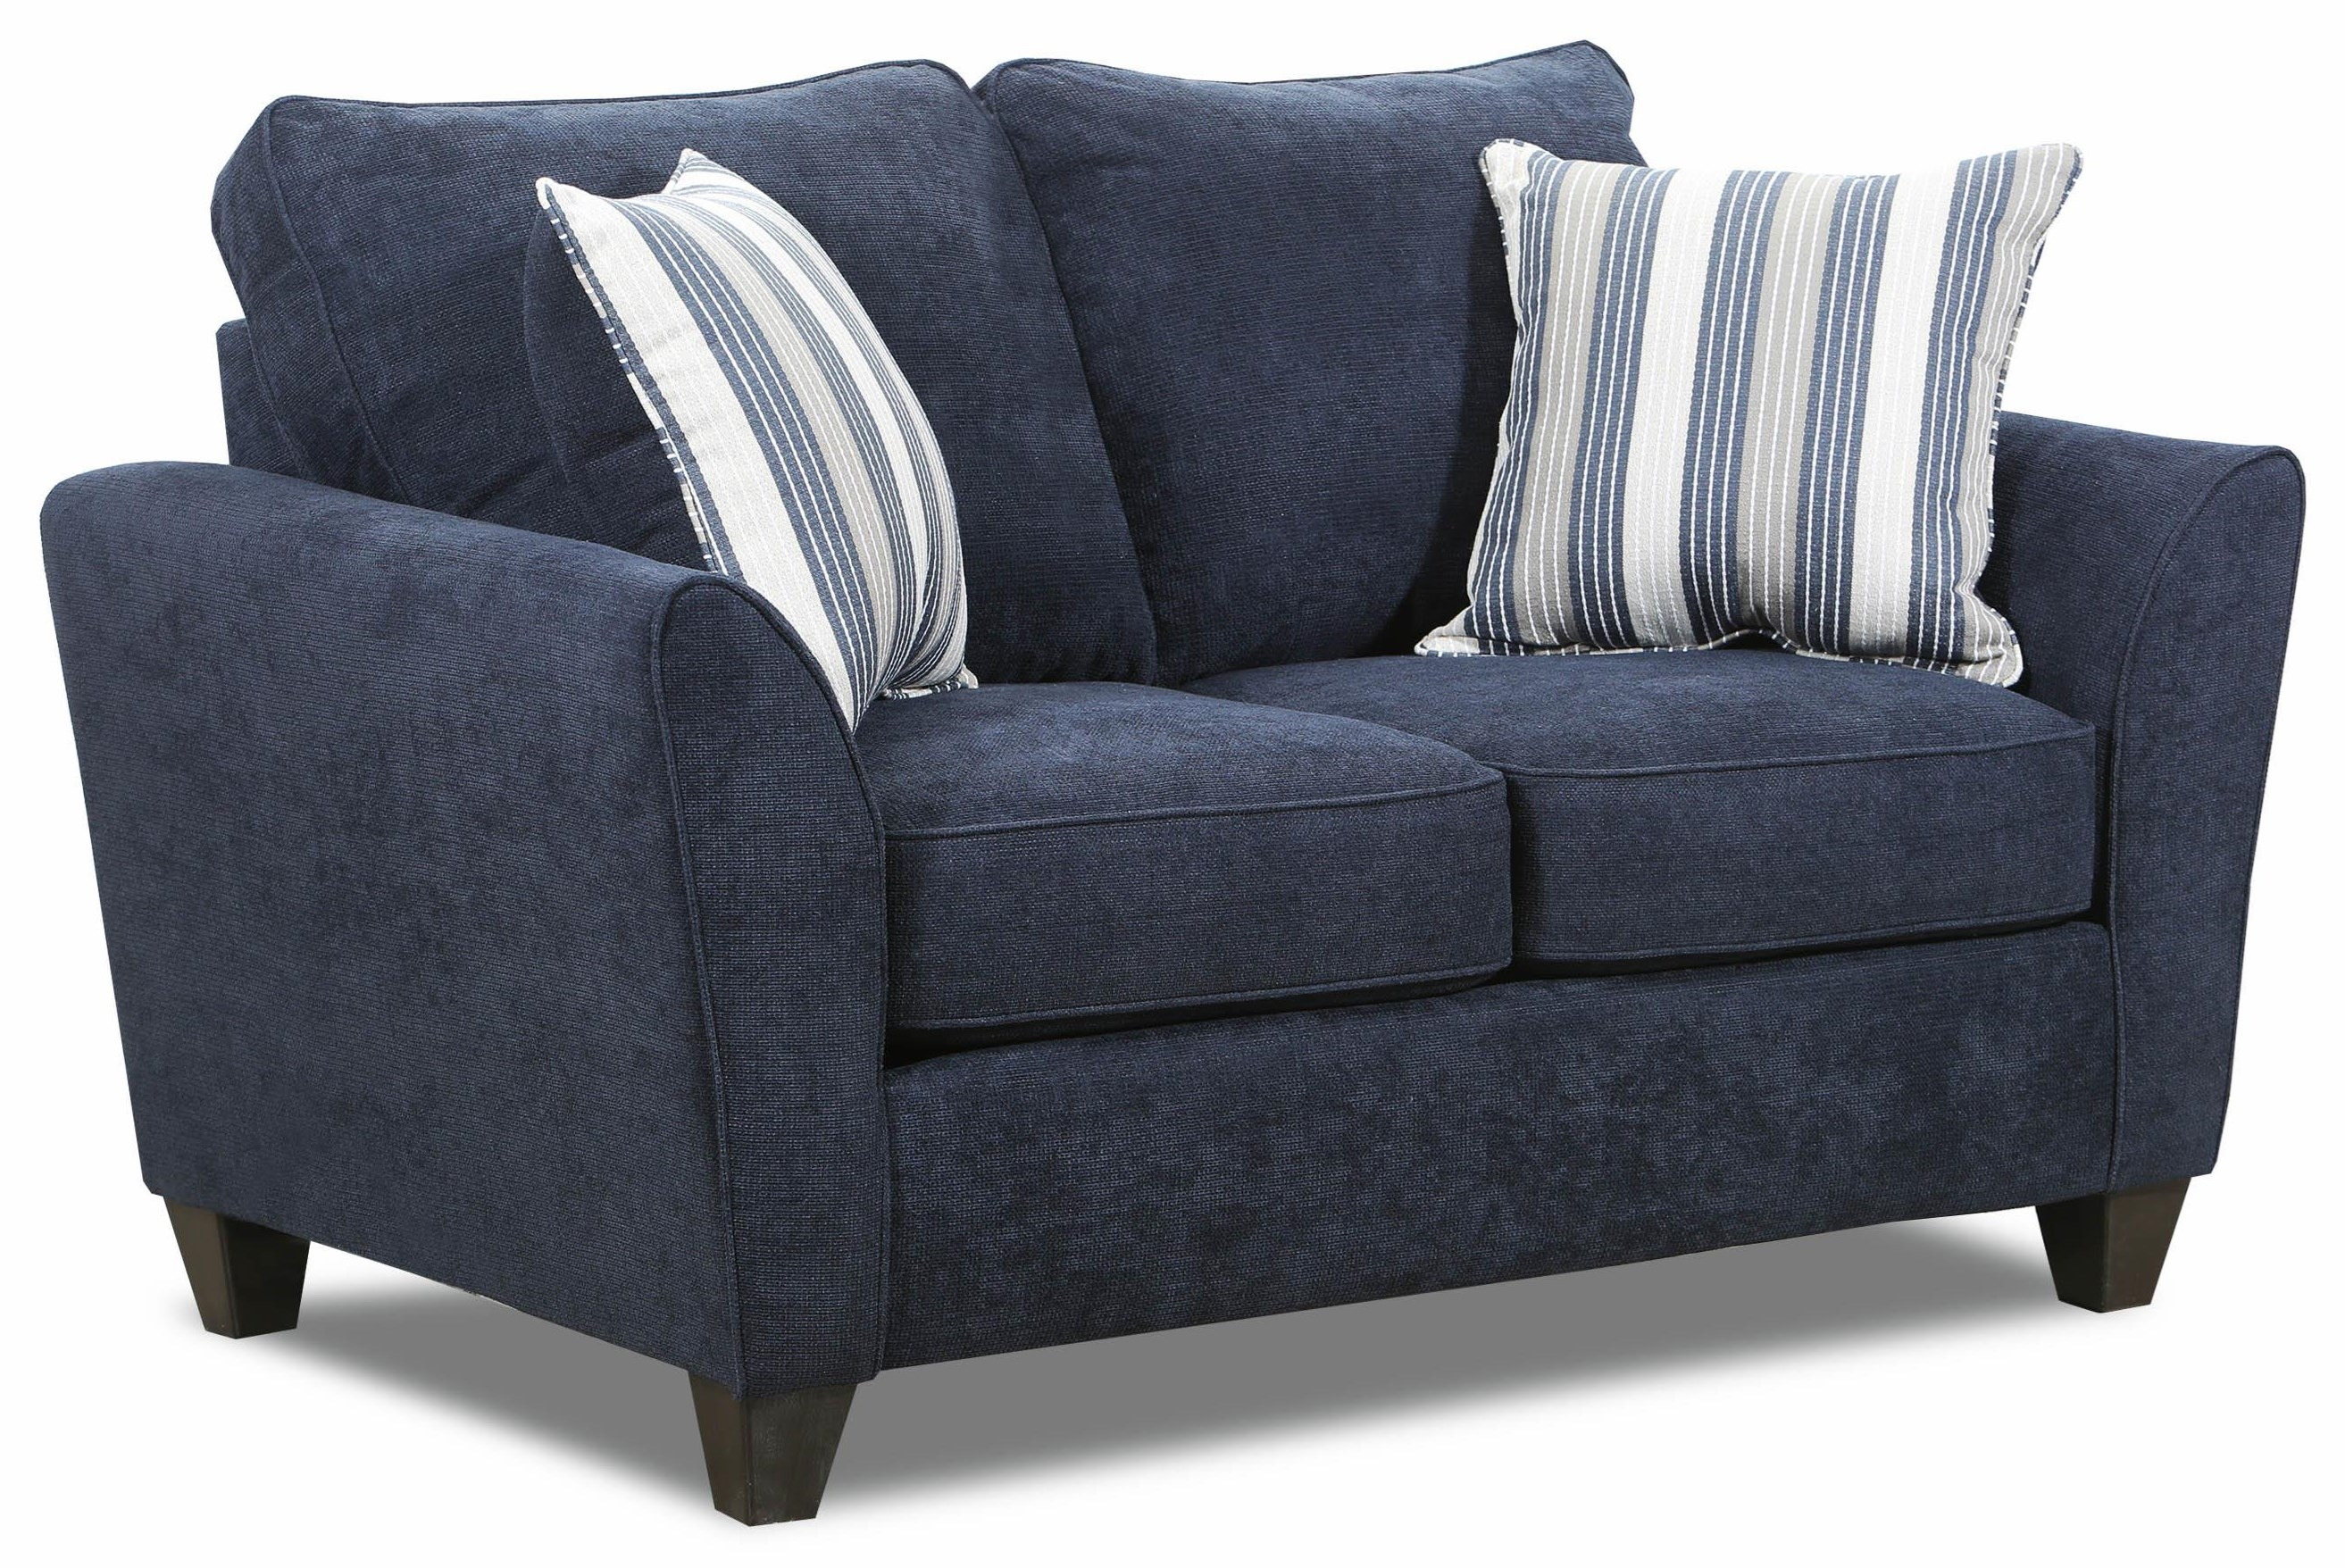 7081 Loveseat by Lane at Value City Furniture